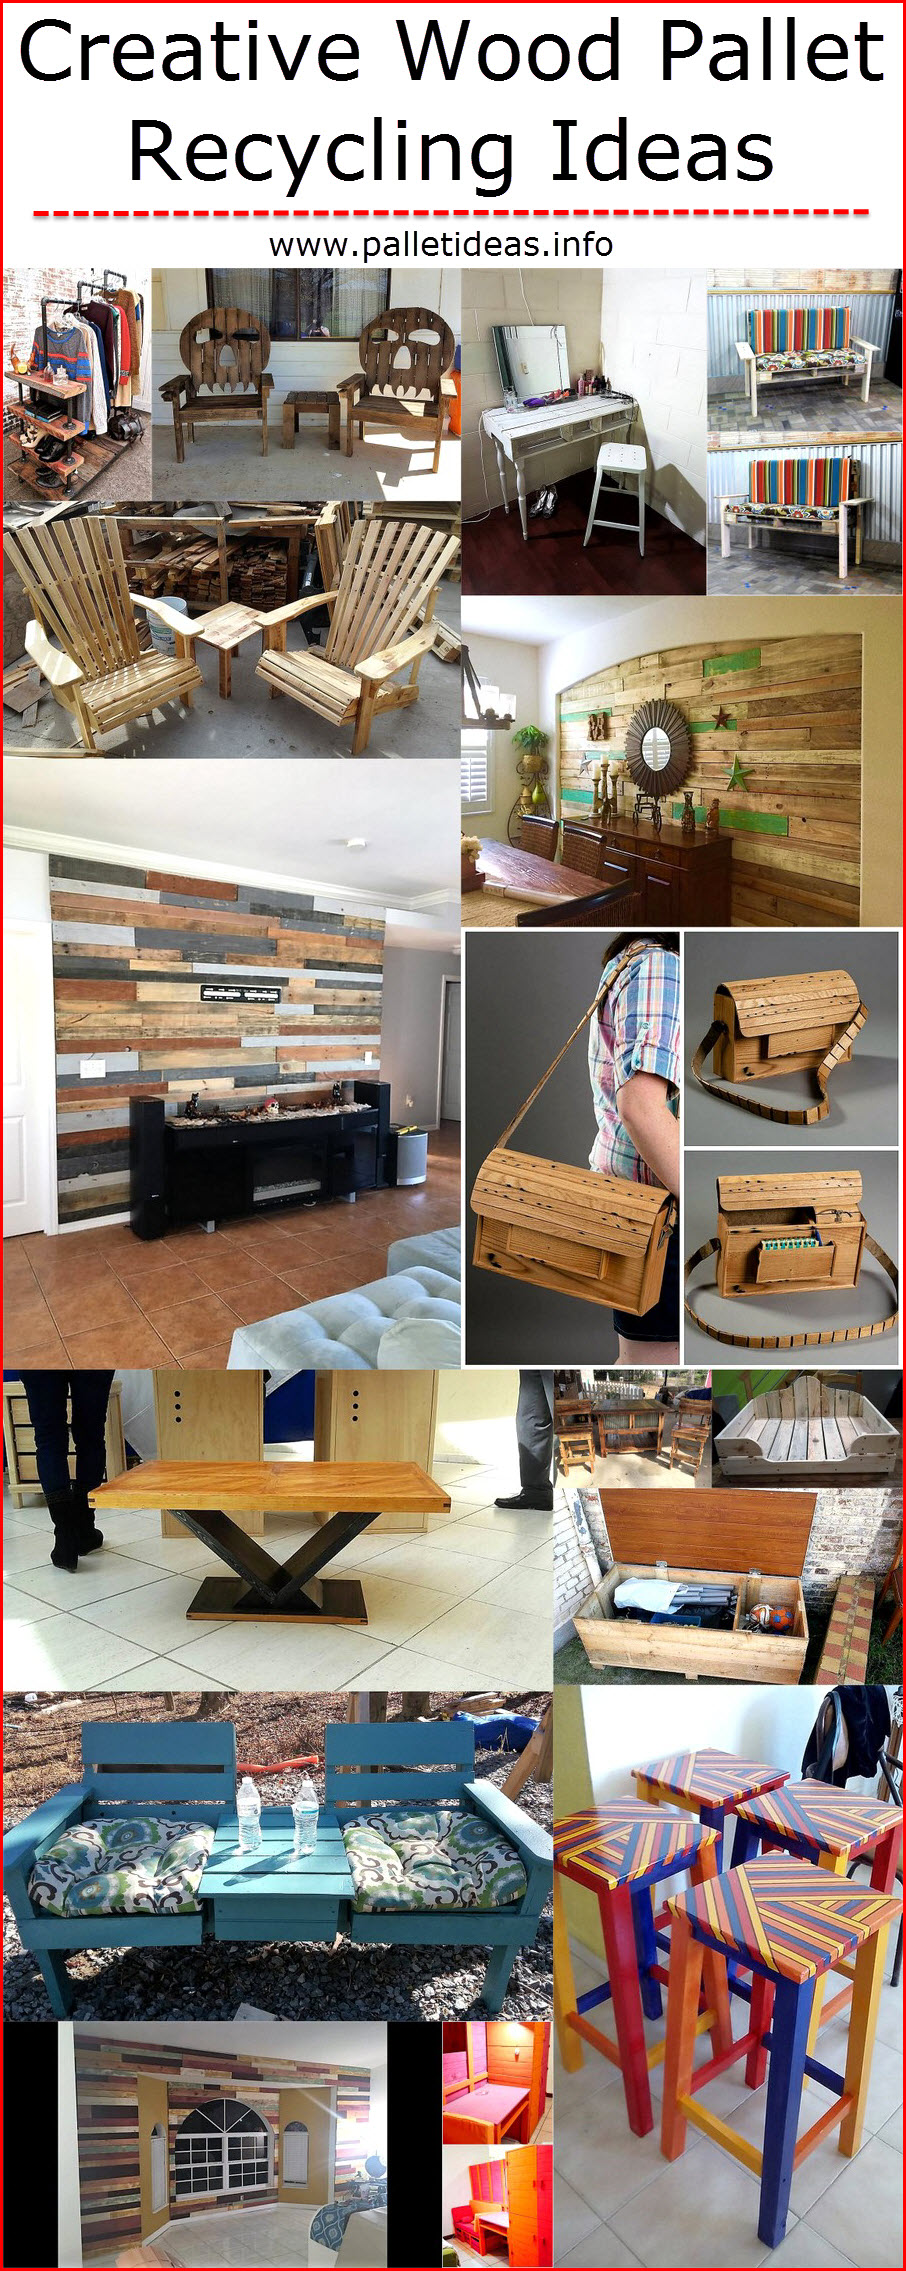 creative-wood-pallet-recycling-ideas